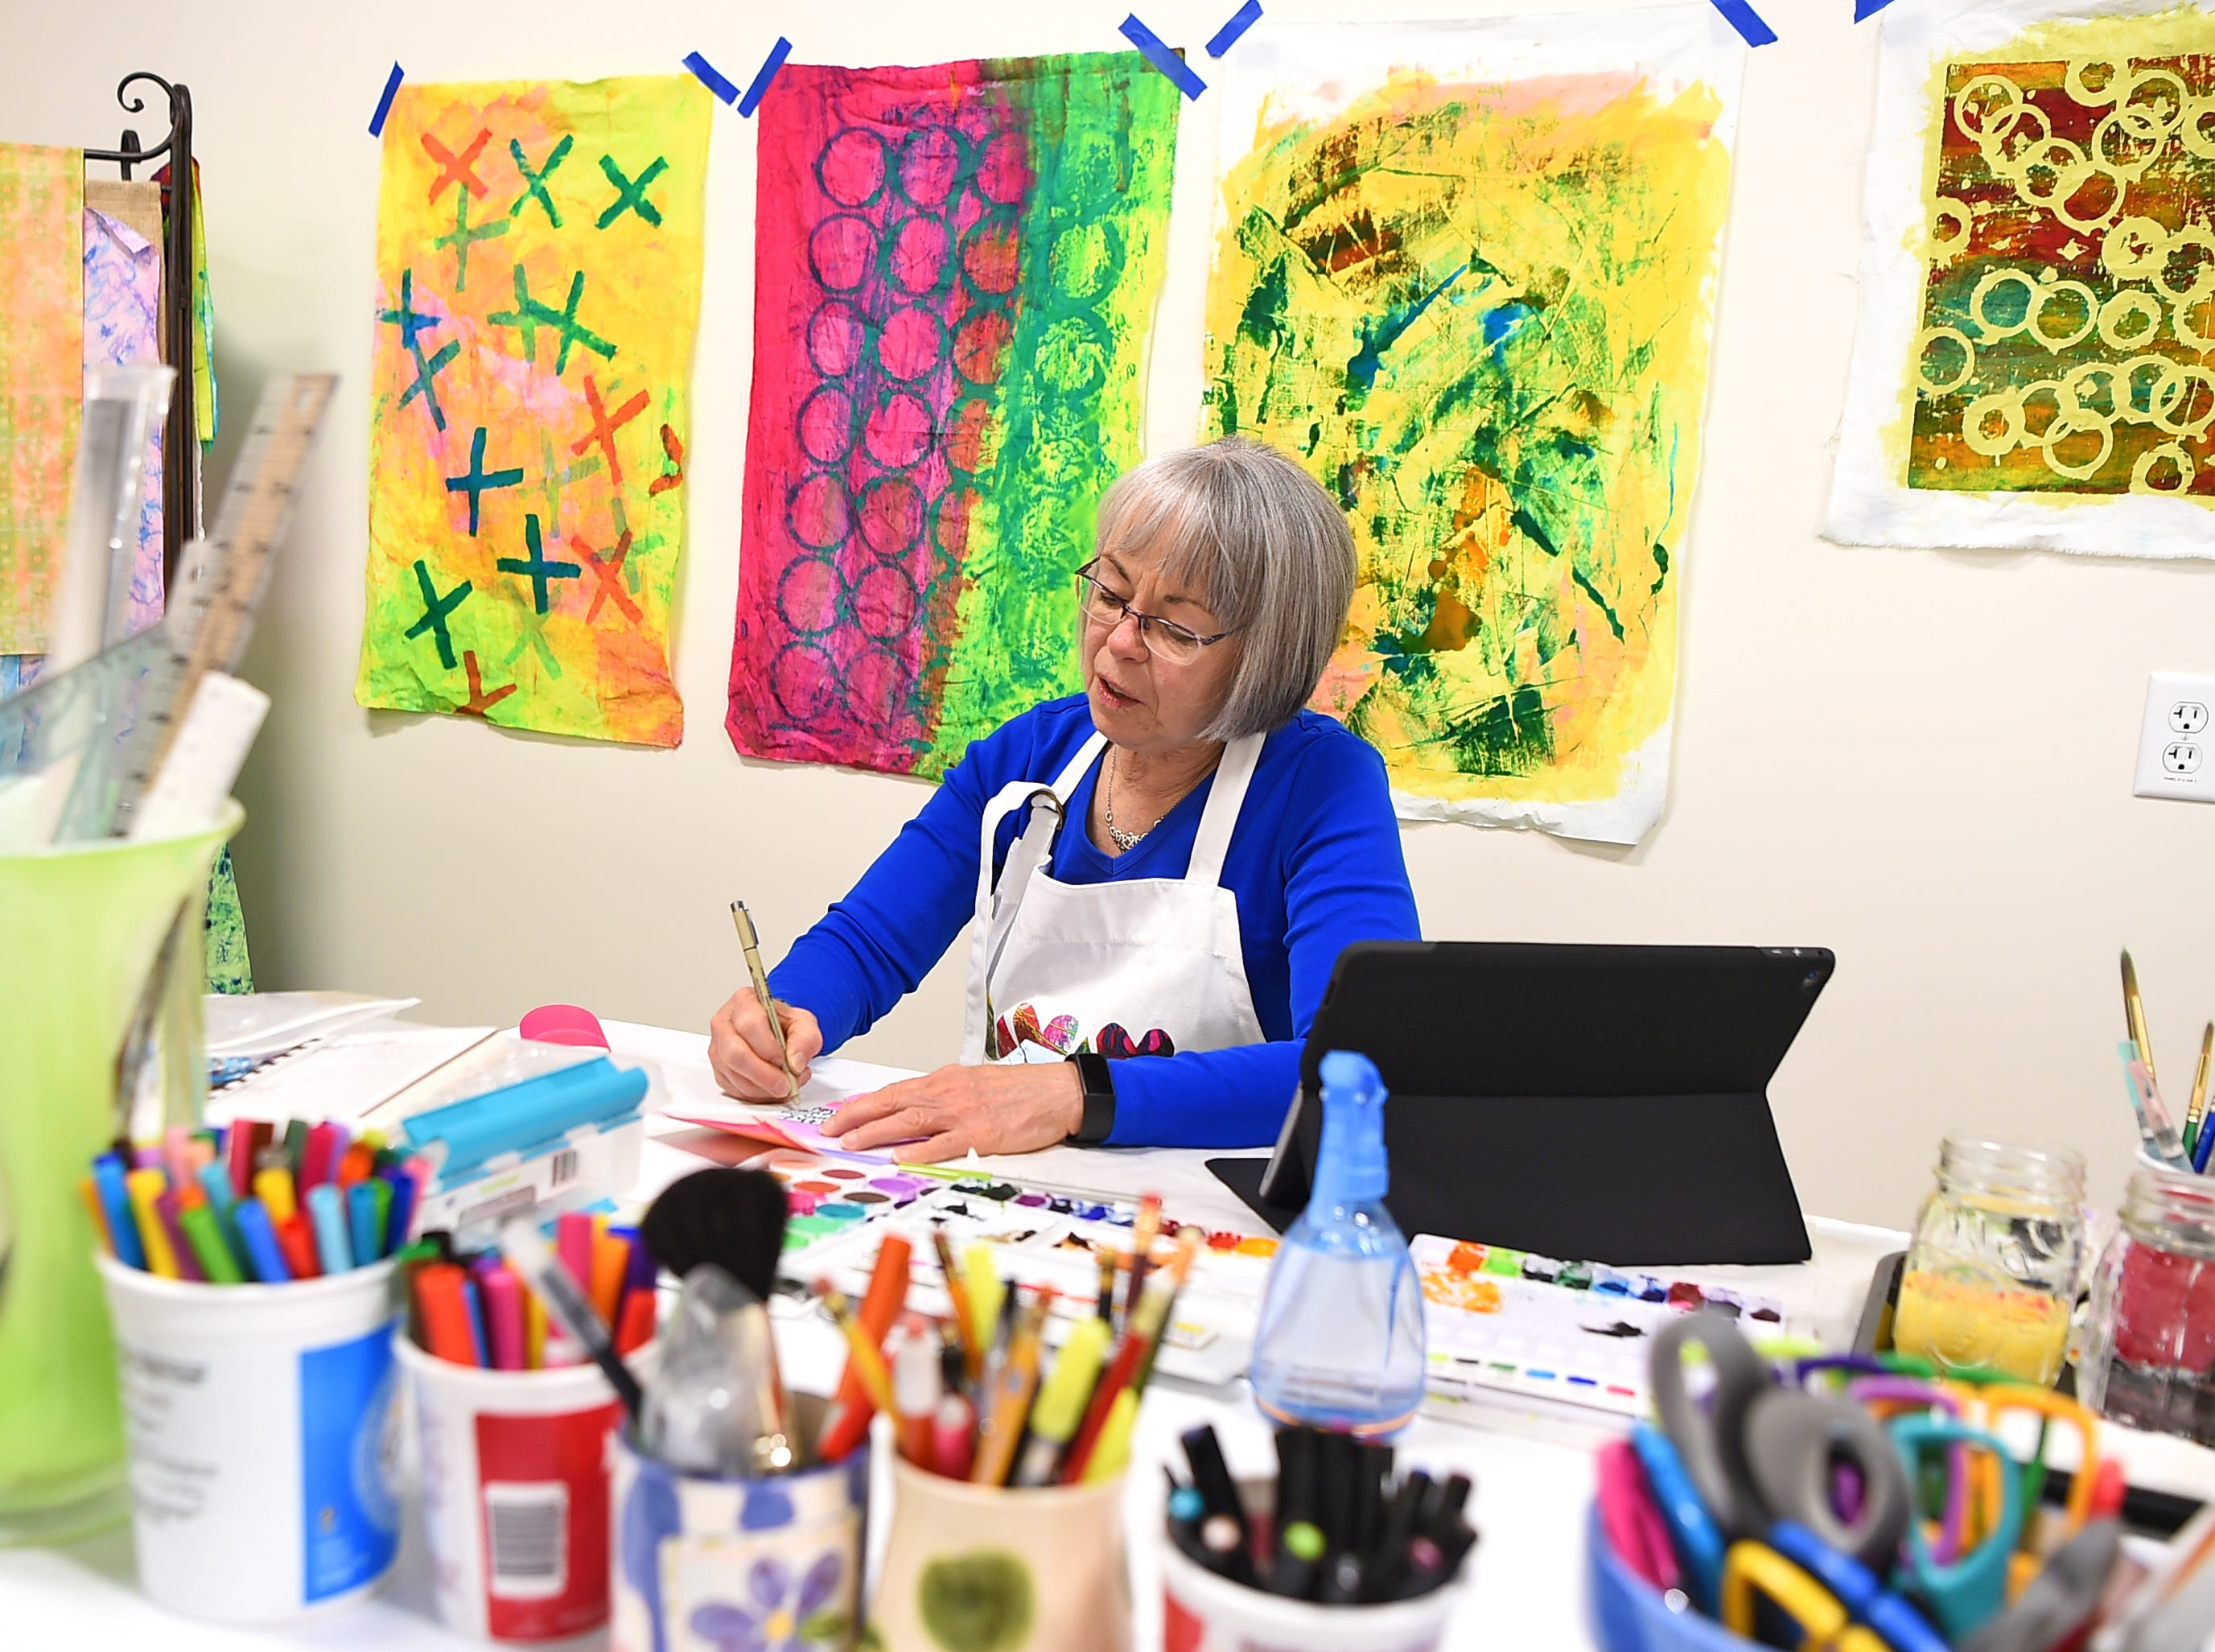 Carol LaBorie at work in her studio, Curiosity Works, which is located in Artist Alley at South Hill. LaBorie works in a variety of media, including fabric, paint and metals.